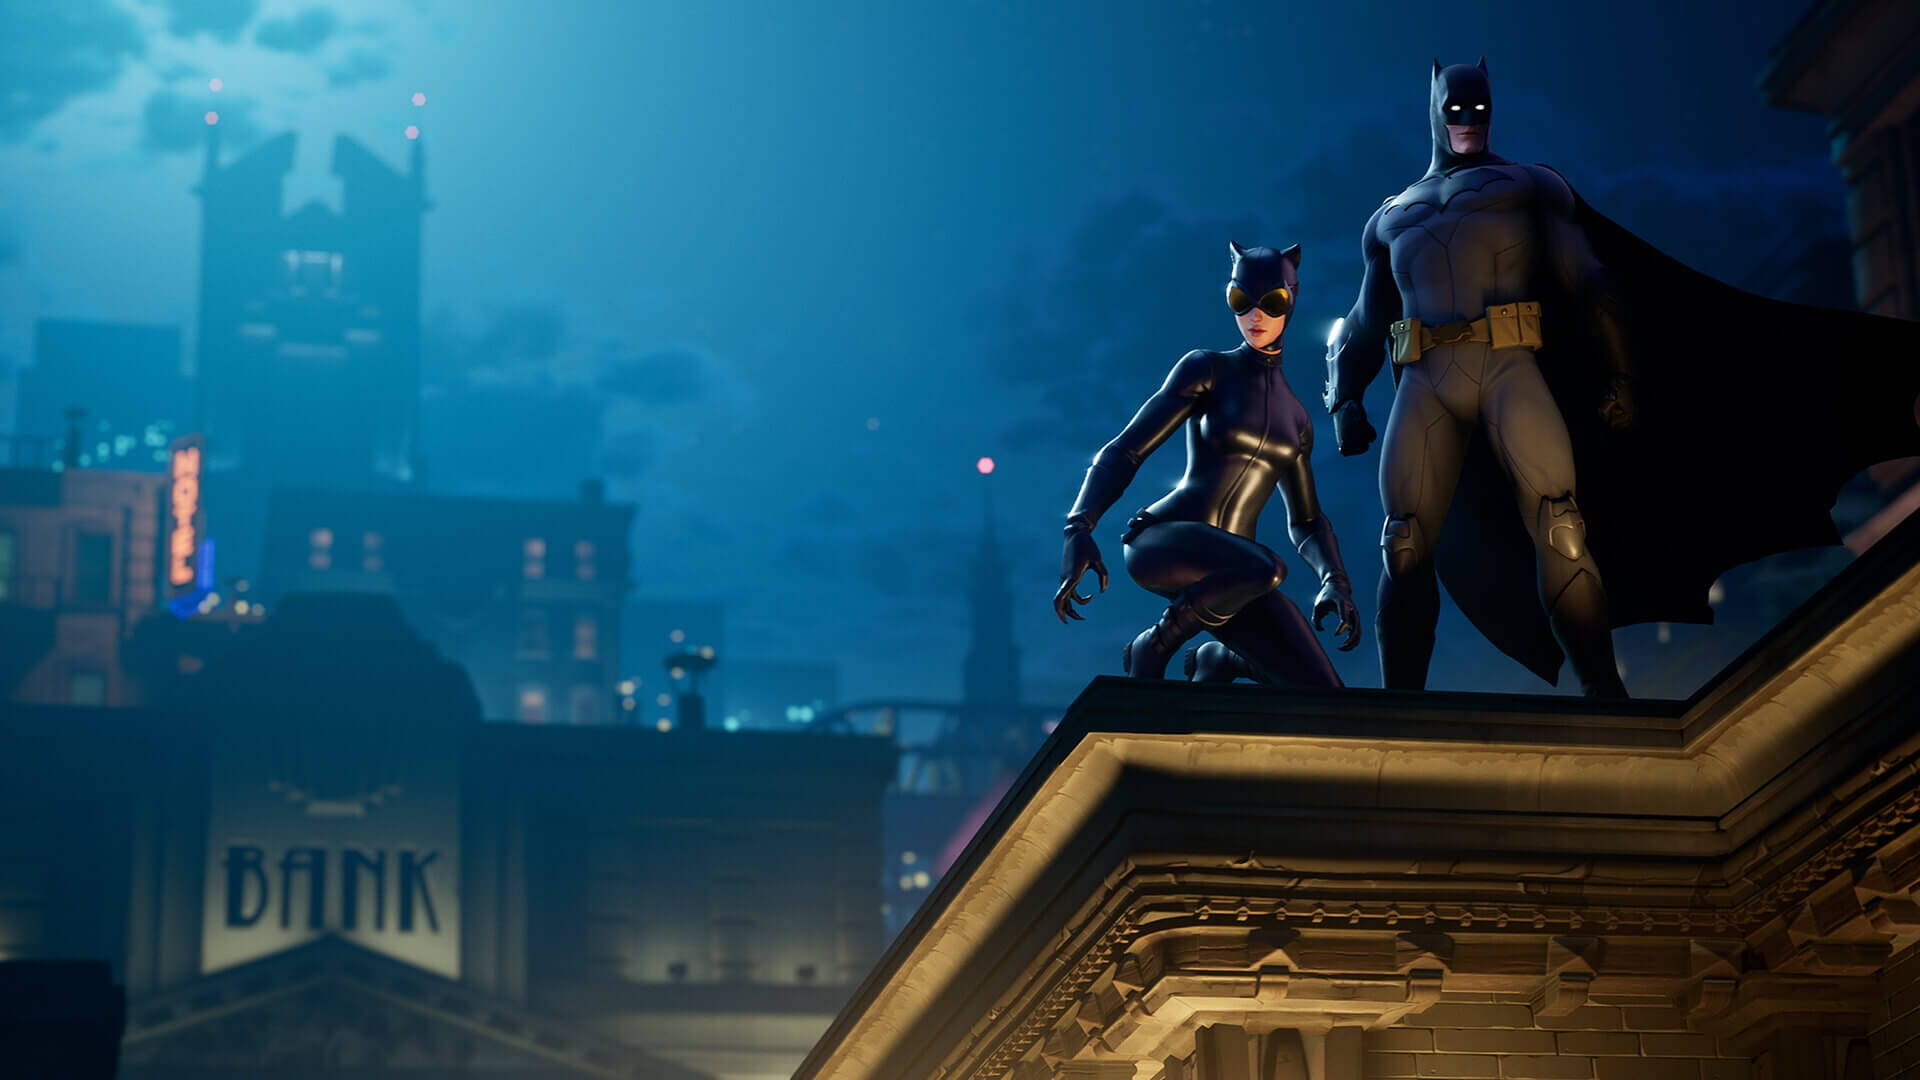 Fortnite Batman Free Games